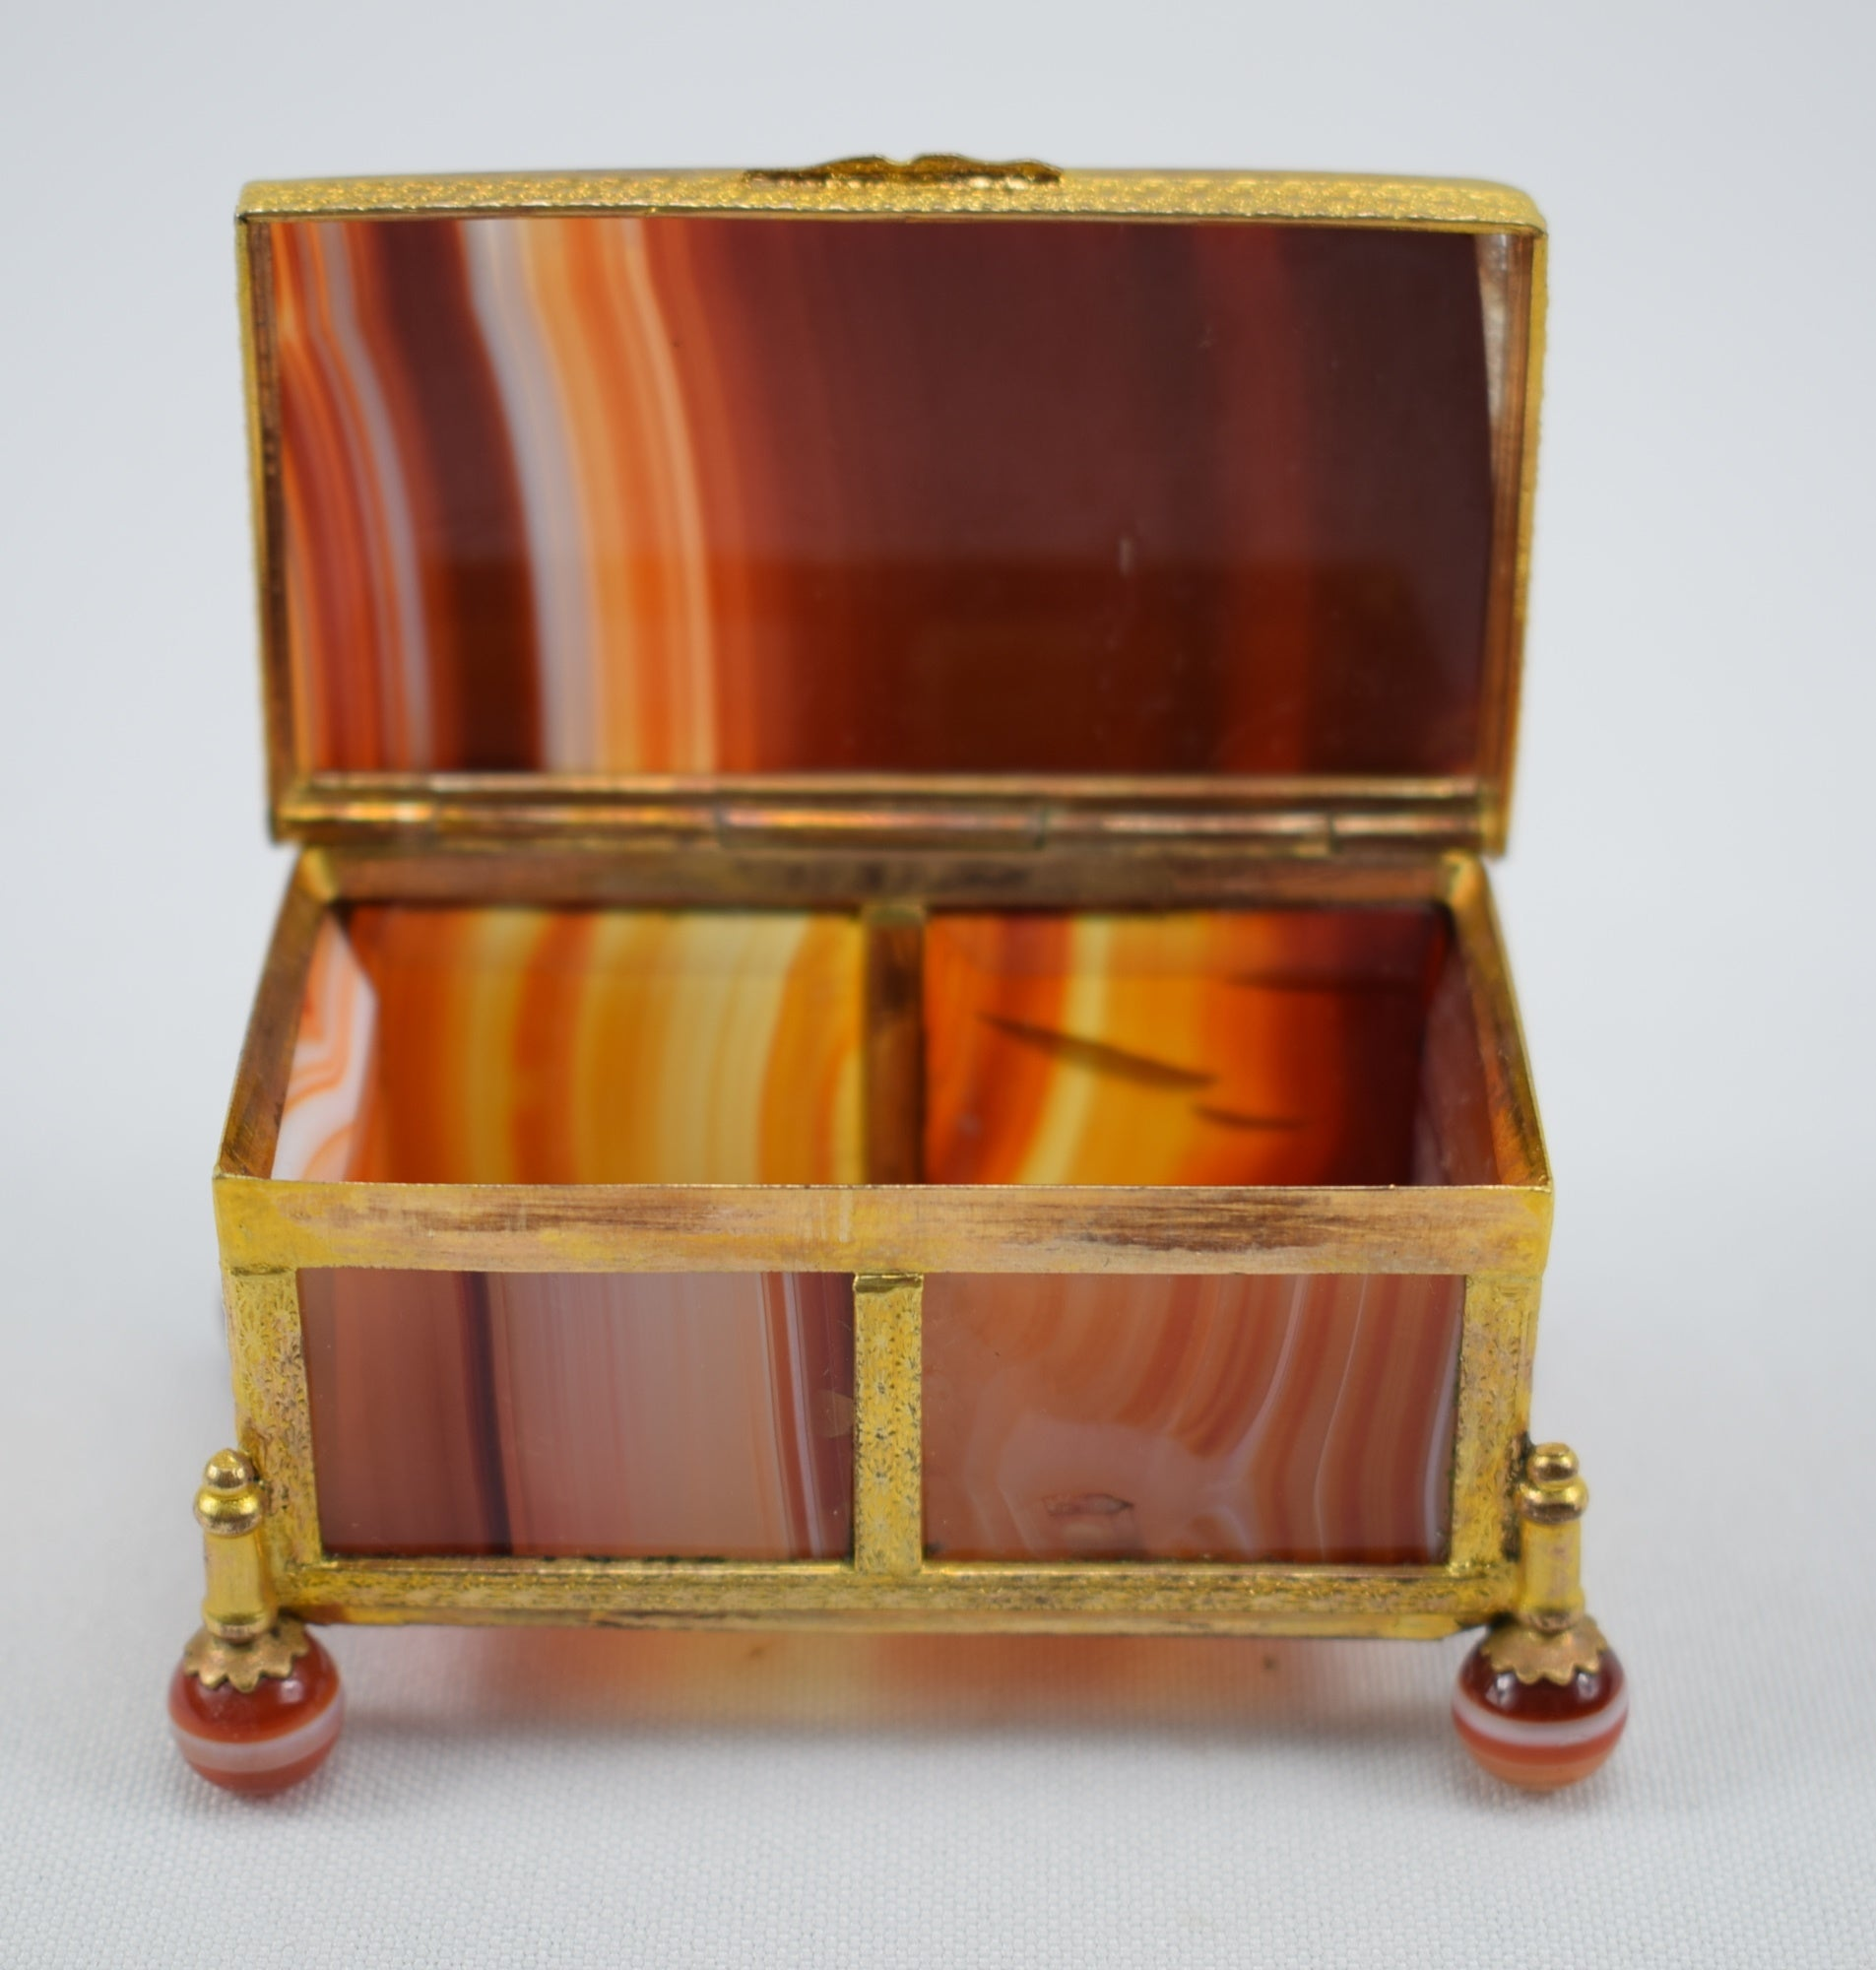 Antique French Orange Banded Agate Panel Gilded Brass Hinged Box Snuff Box Jewelry Case 19th Century